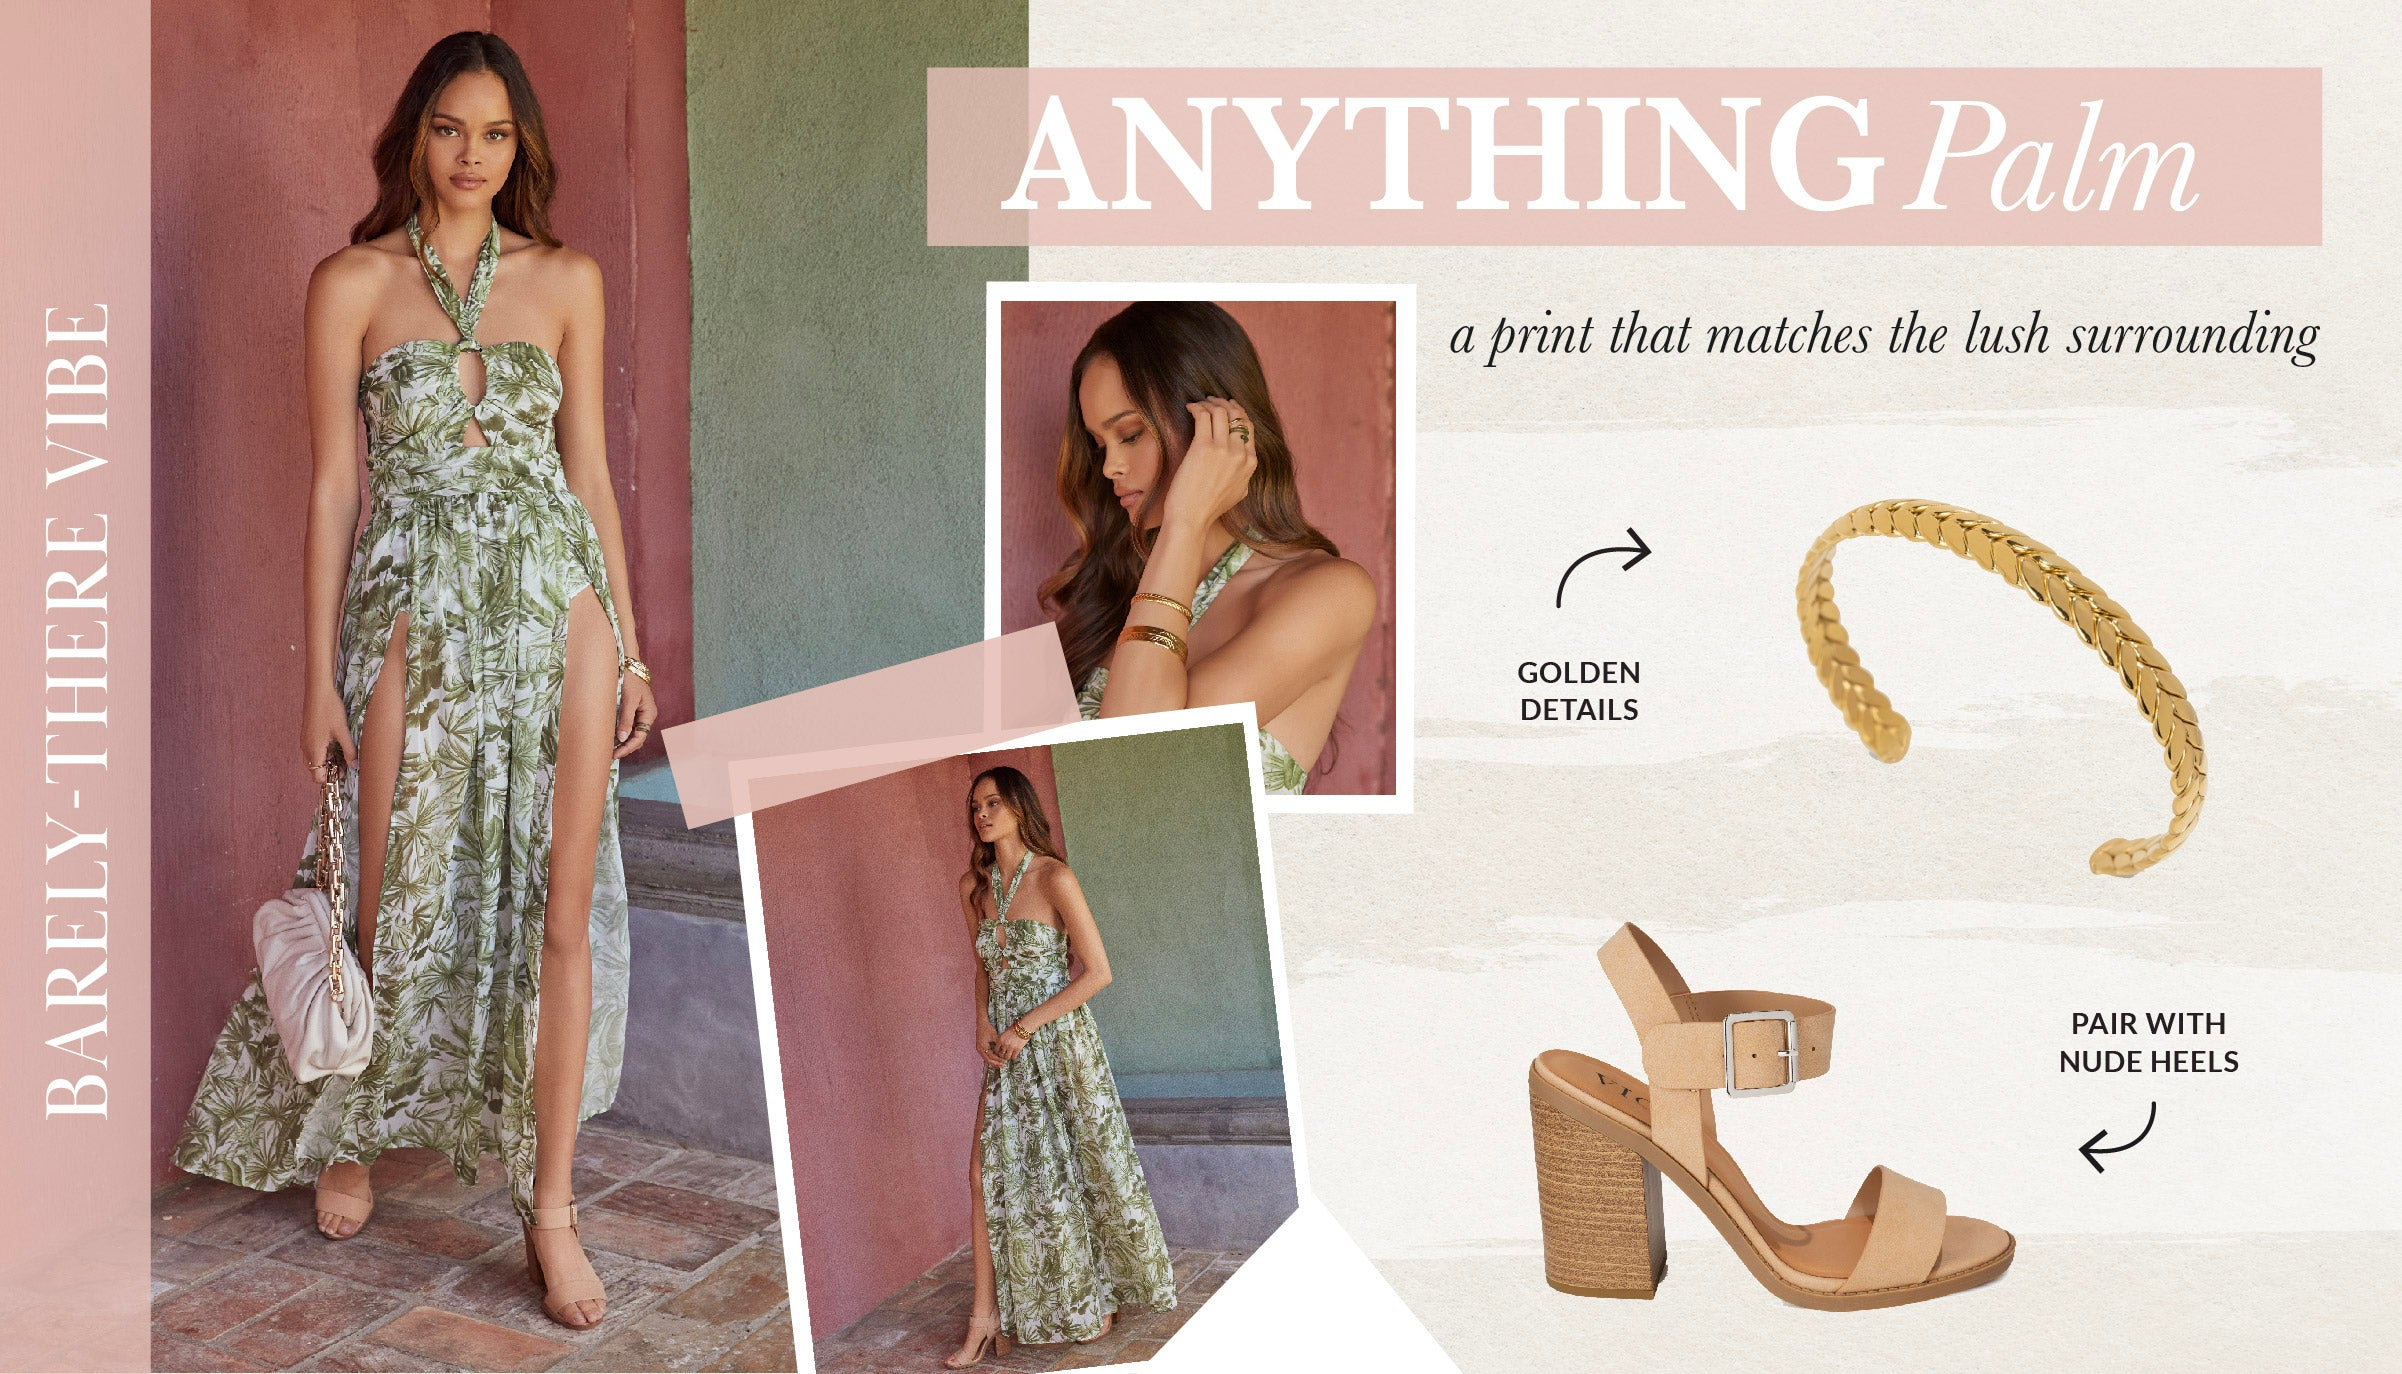 You truly can't go wrong with a print that matches the lush surroundings. Find a maxi with ultra high slits that gives off that barely-there vibe. Light green is super easy to accessorize with a straw purse, sand colored shoes, and gold jewelry.